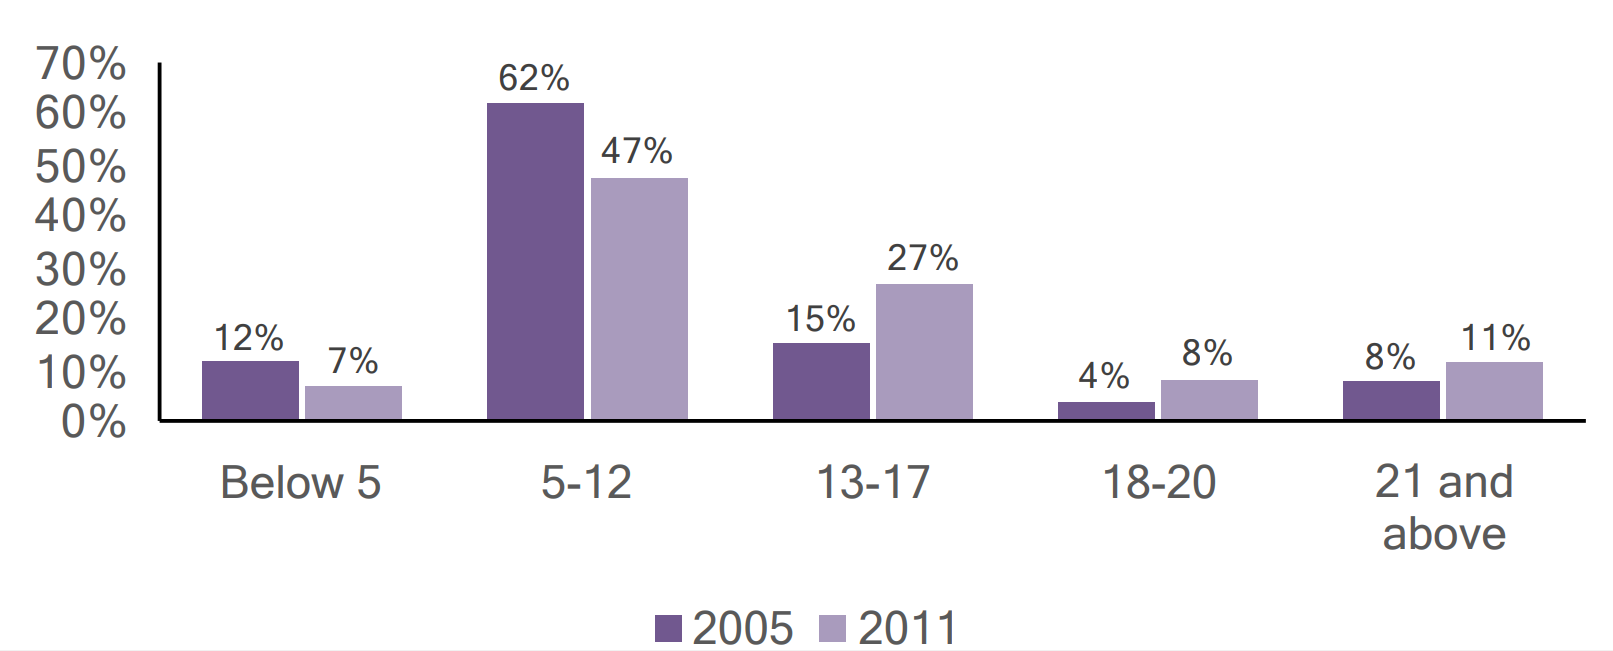 Bar graph of individuals with autism in Berks County by age, comparing 2005 and 2011 data.